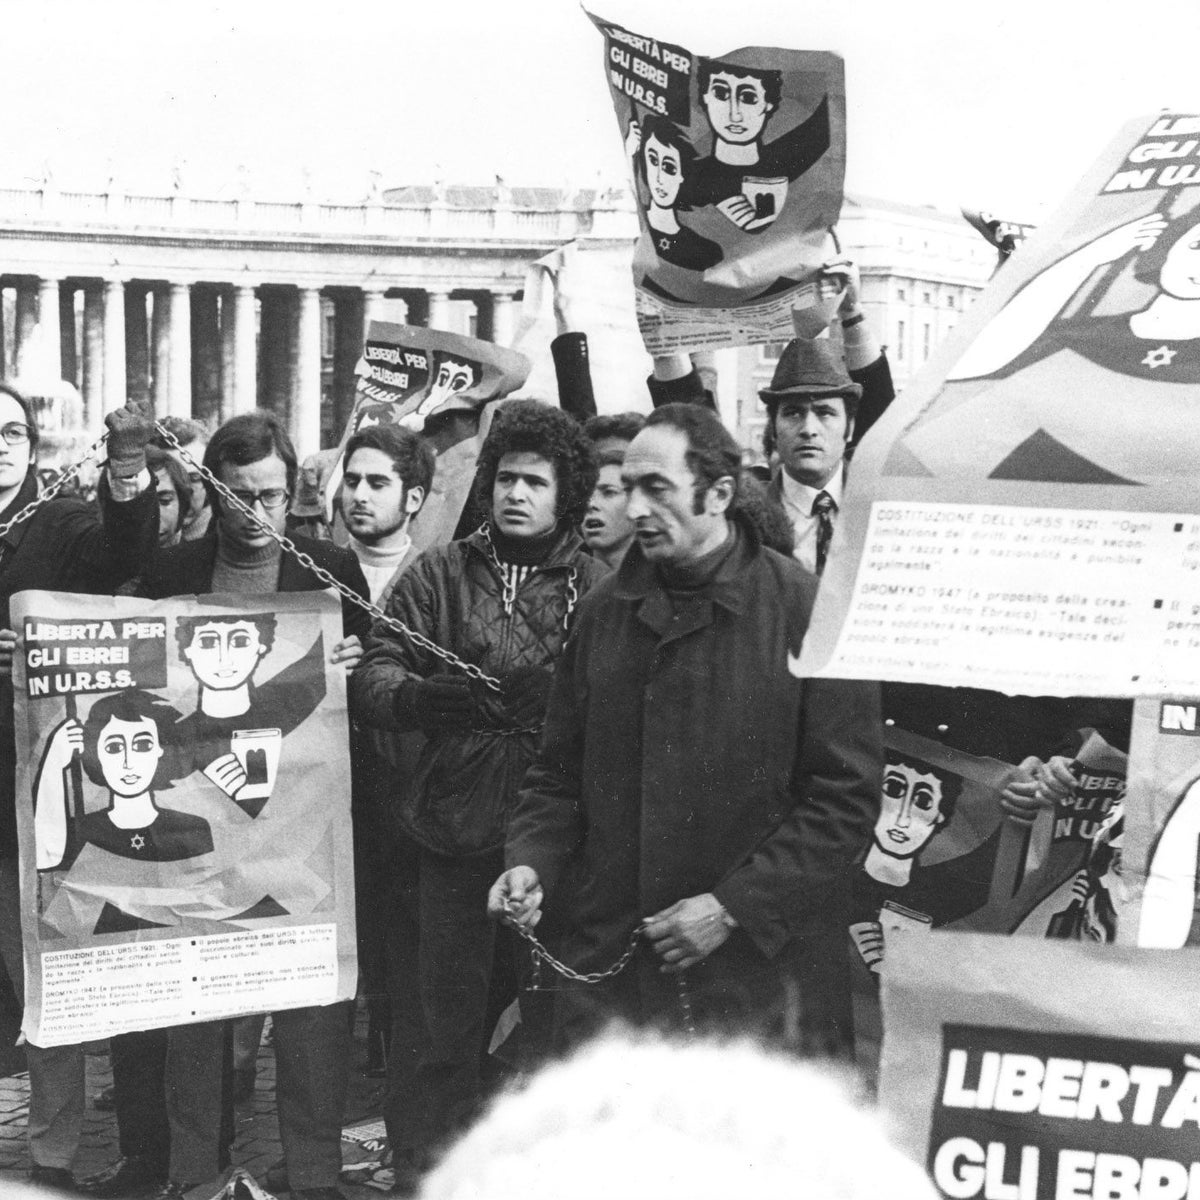 Moretto, center, in the early 1970s, chained with other protesters in front of the Vatican at a demonstration in support of Jews in the Soviet Union.